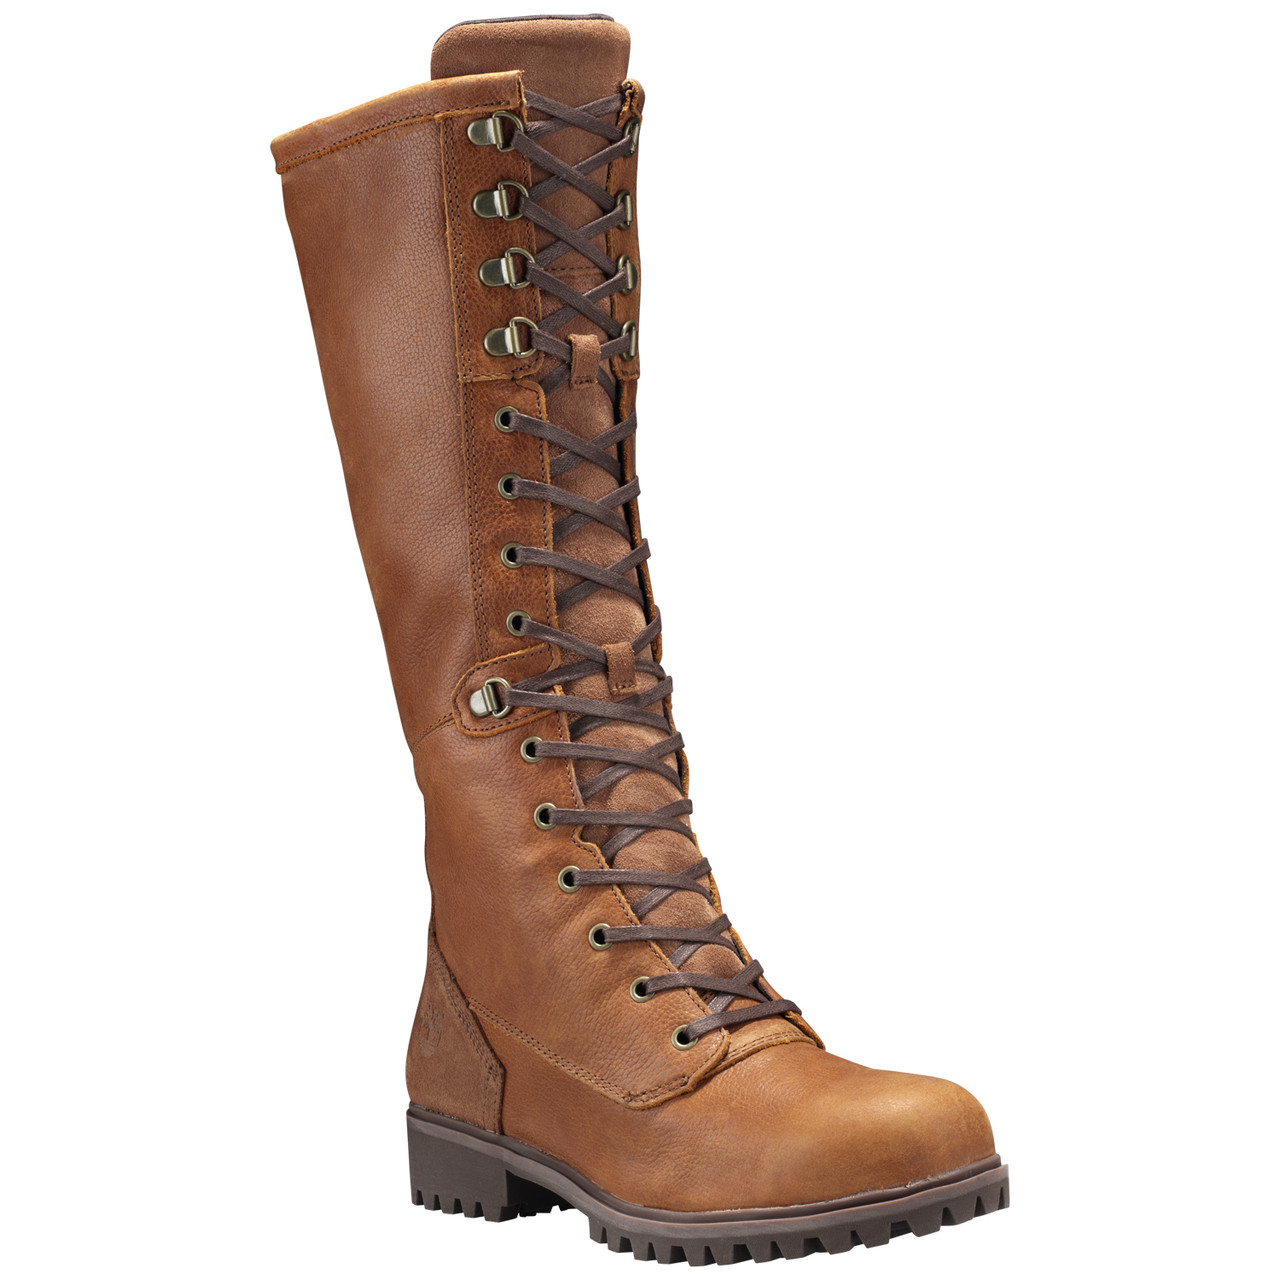 8c953f6cb4 Timberland Women's Wheelwright Tall Lace Waterproof Boot - Tan - Chaar